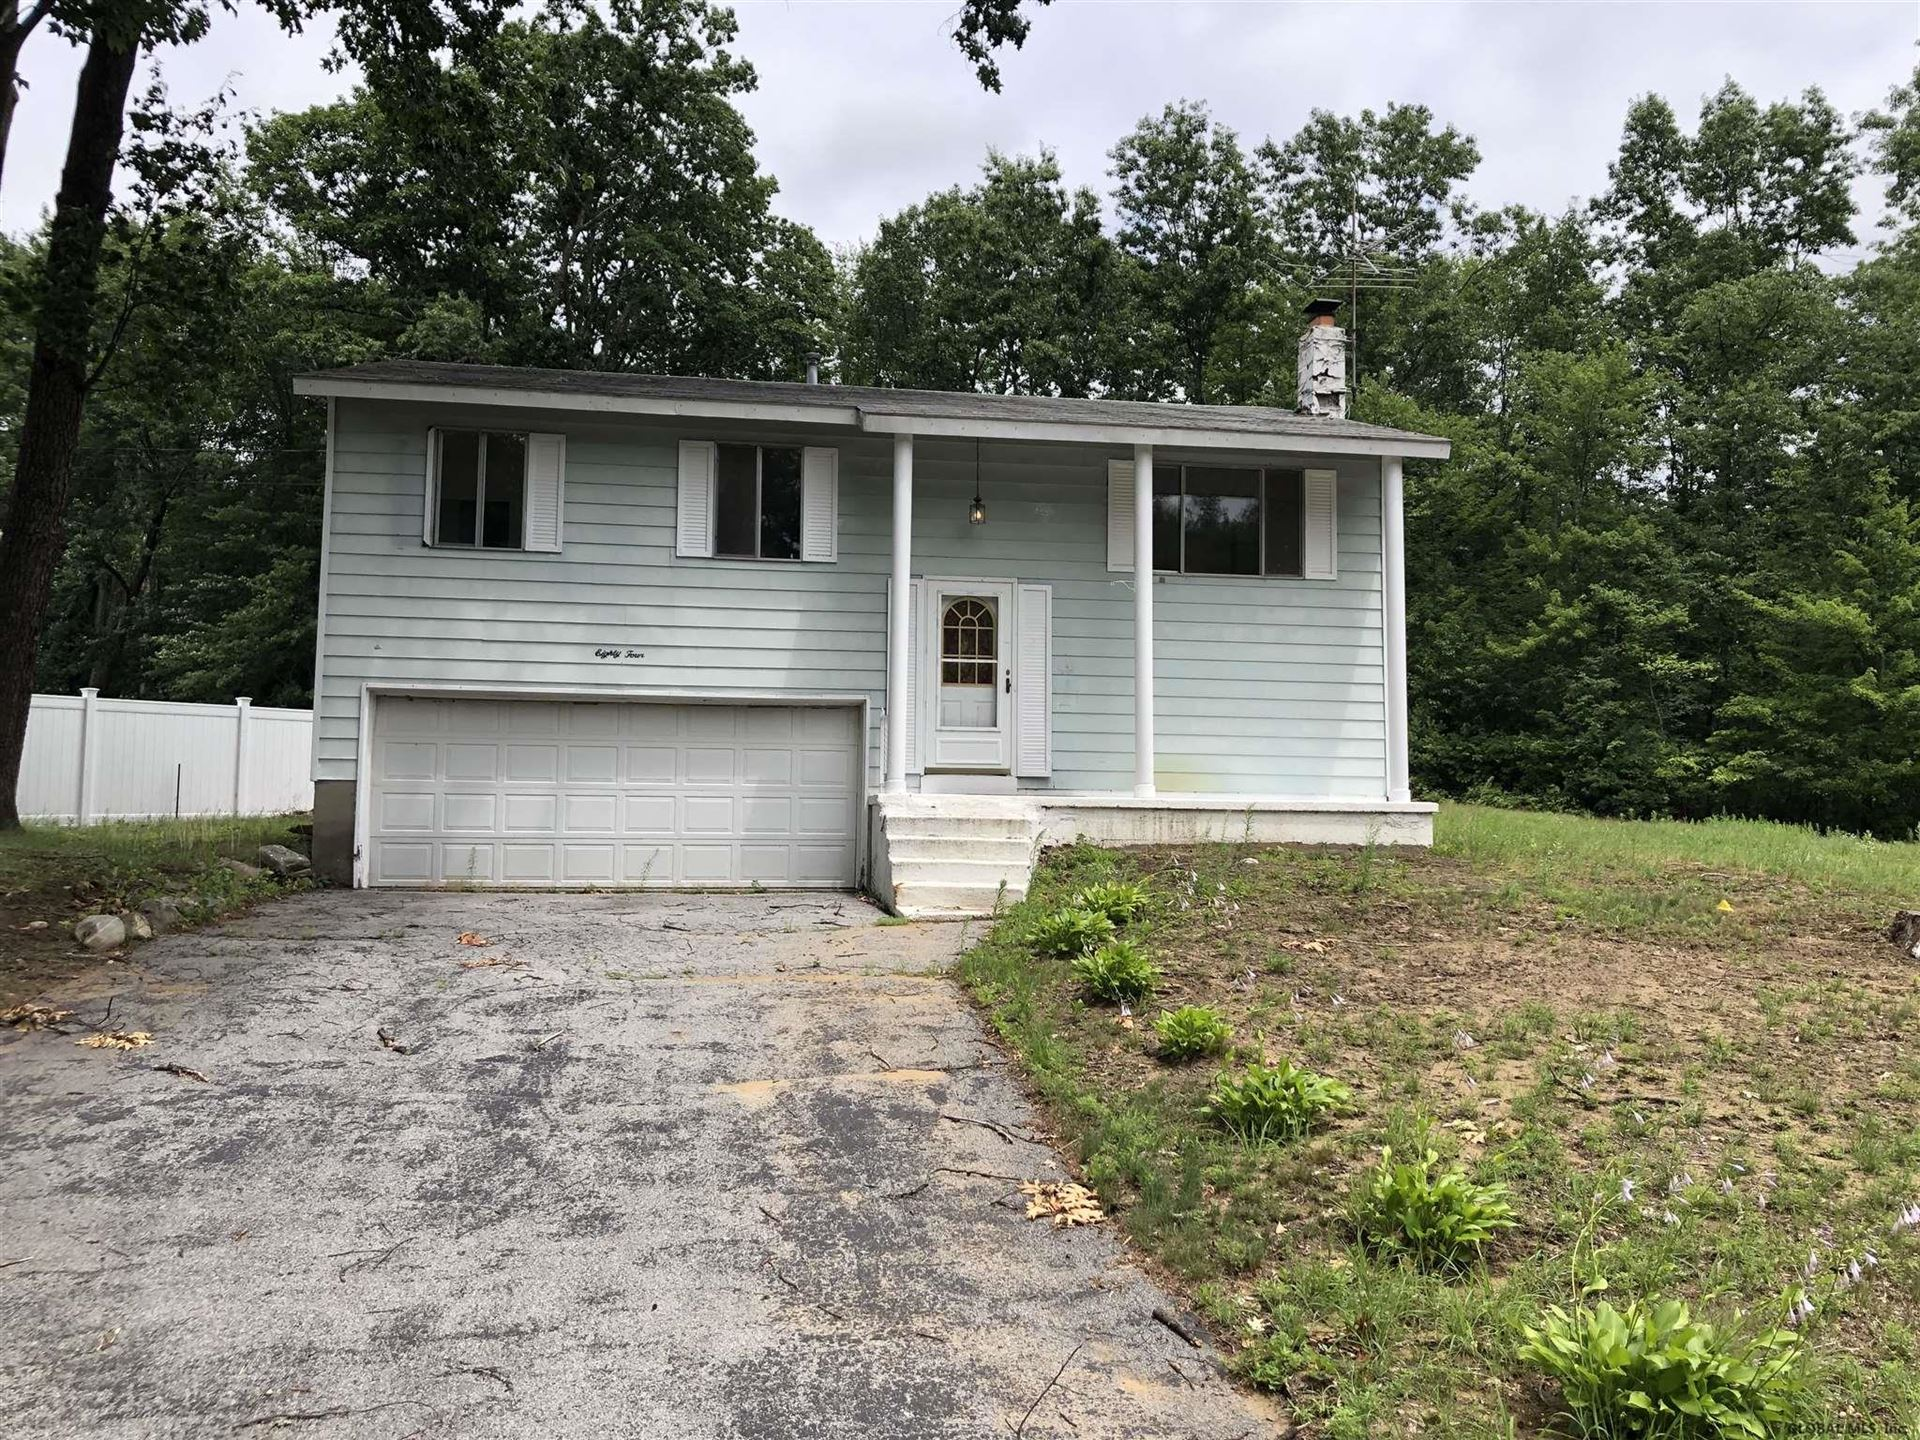 84 QUEVIC DR, Saratoga Springs, NY 12866 - #: 202022906